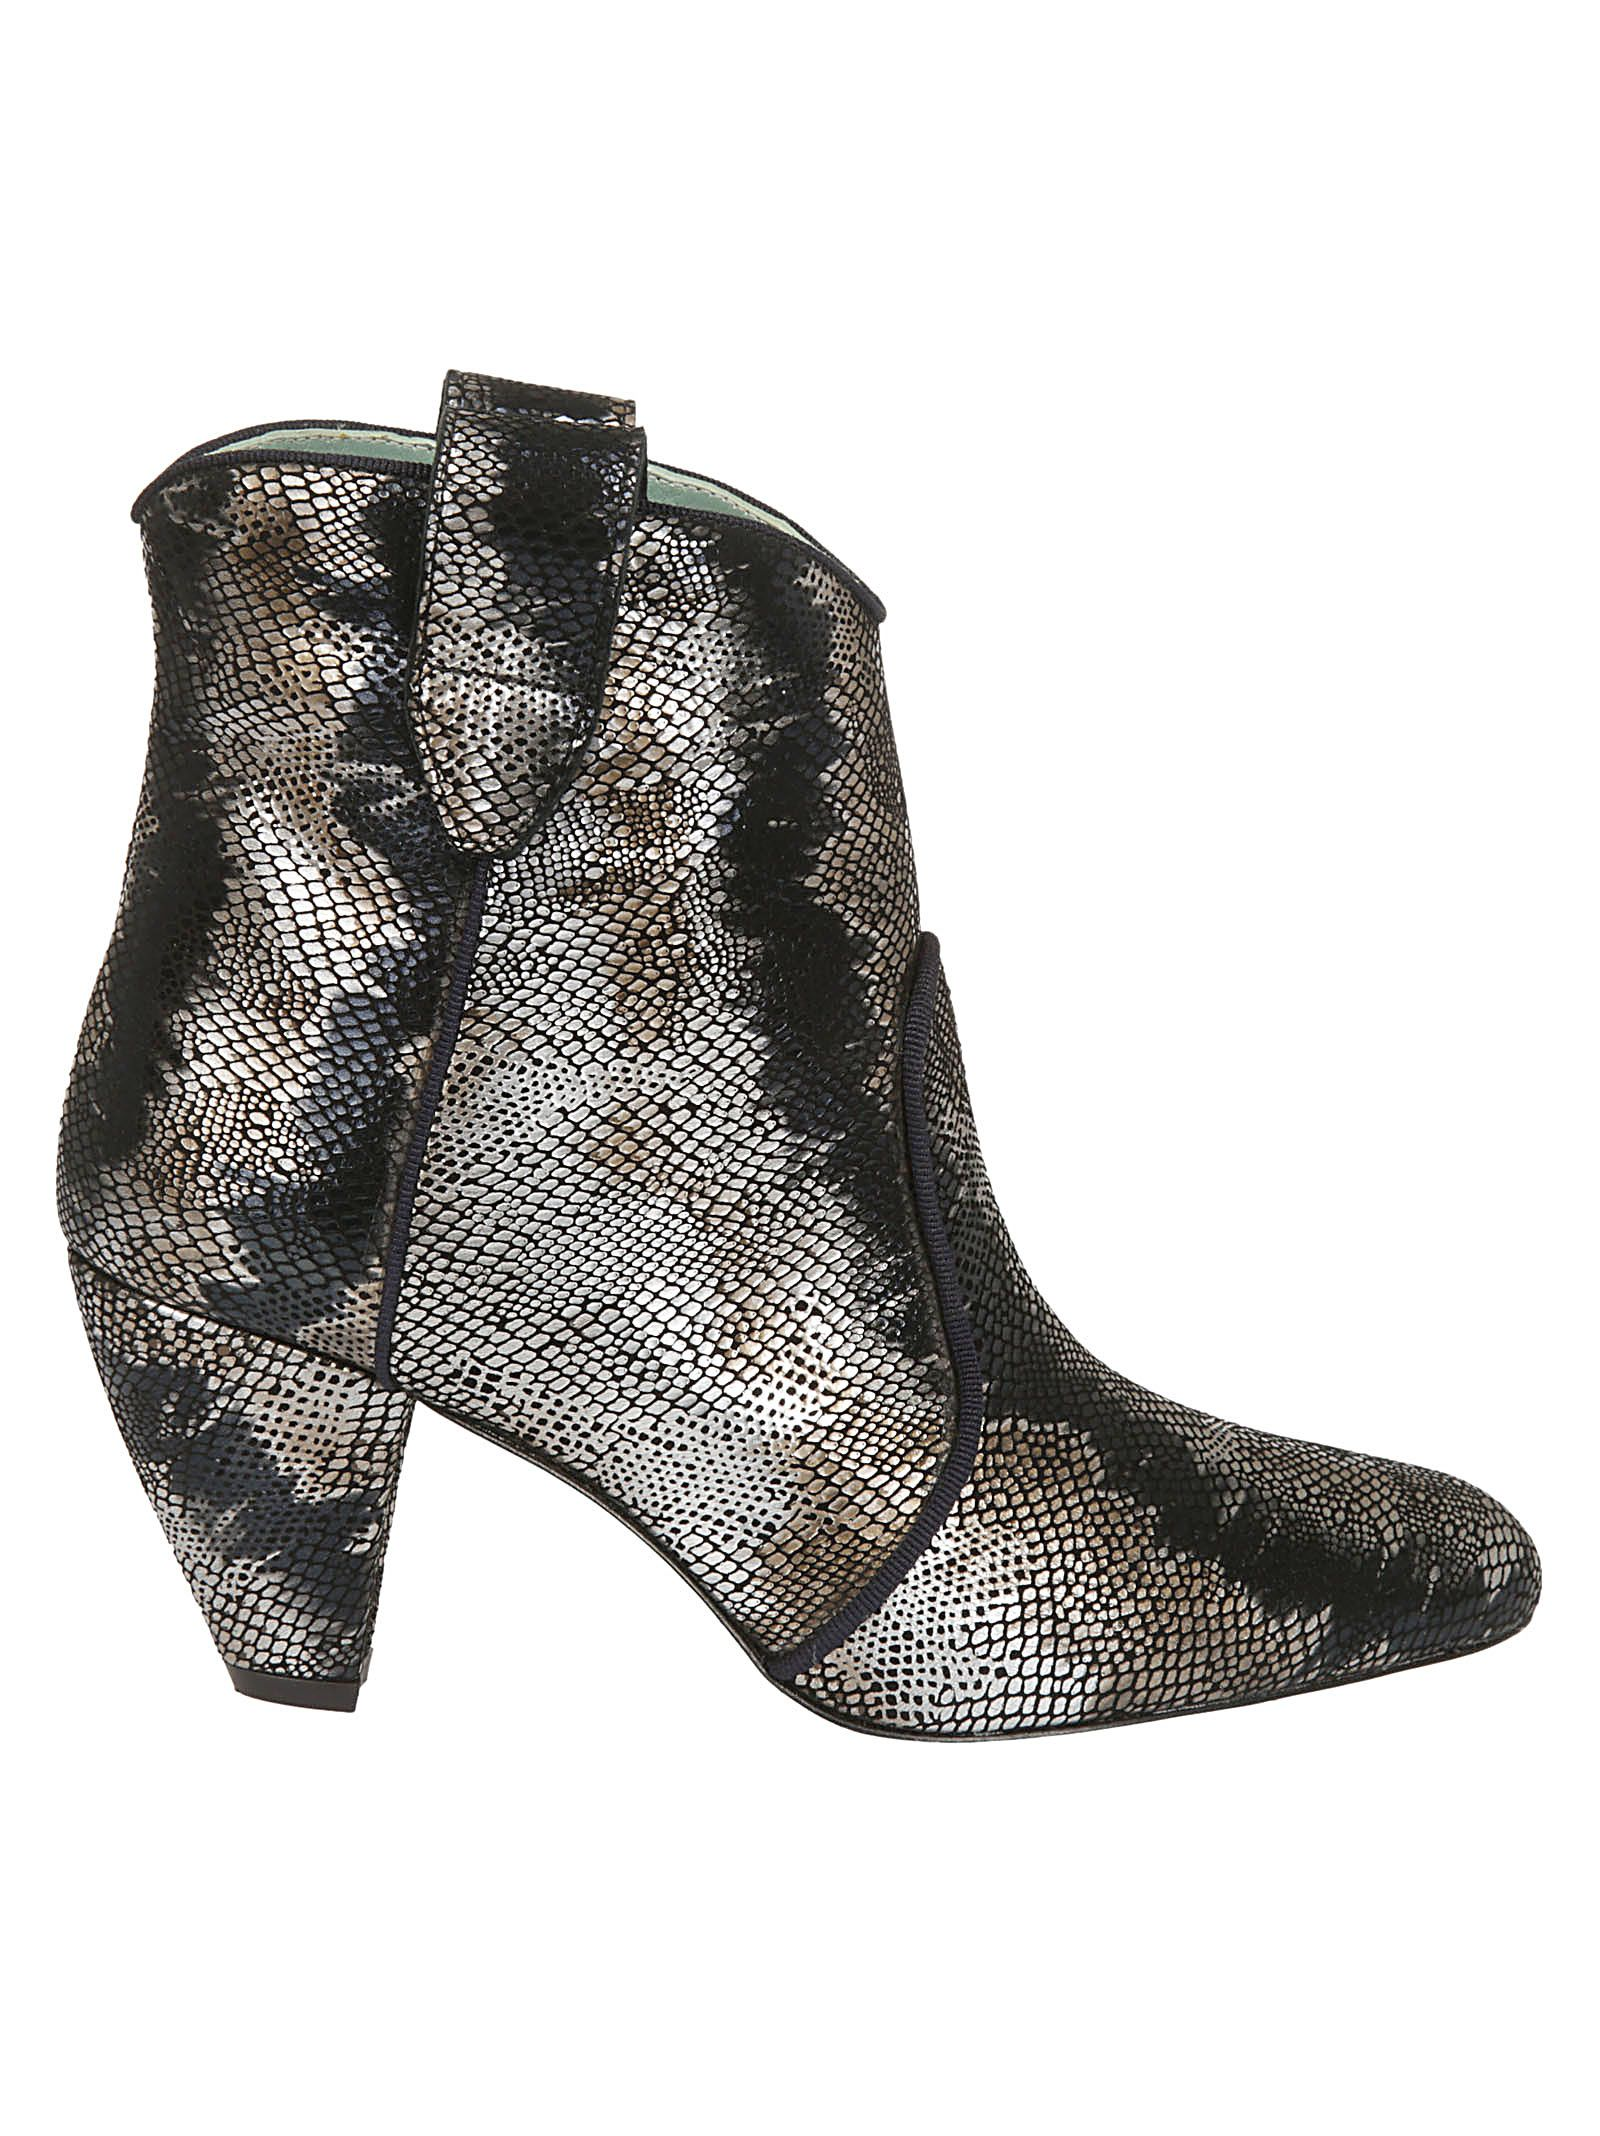 PAOLA D'ARCANO Paola D'Arcano Sequin Ankle Boots in Silver